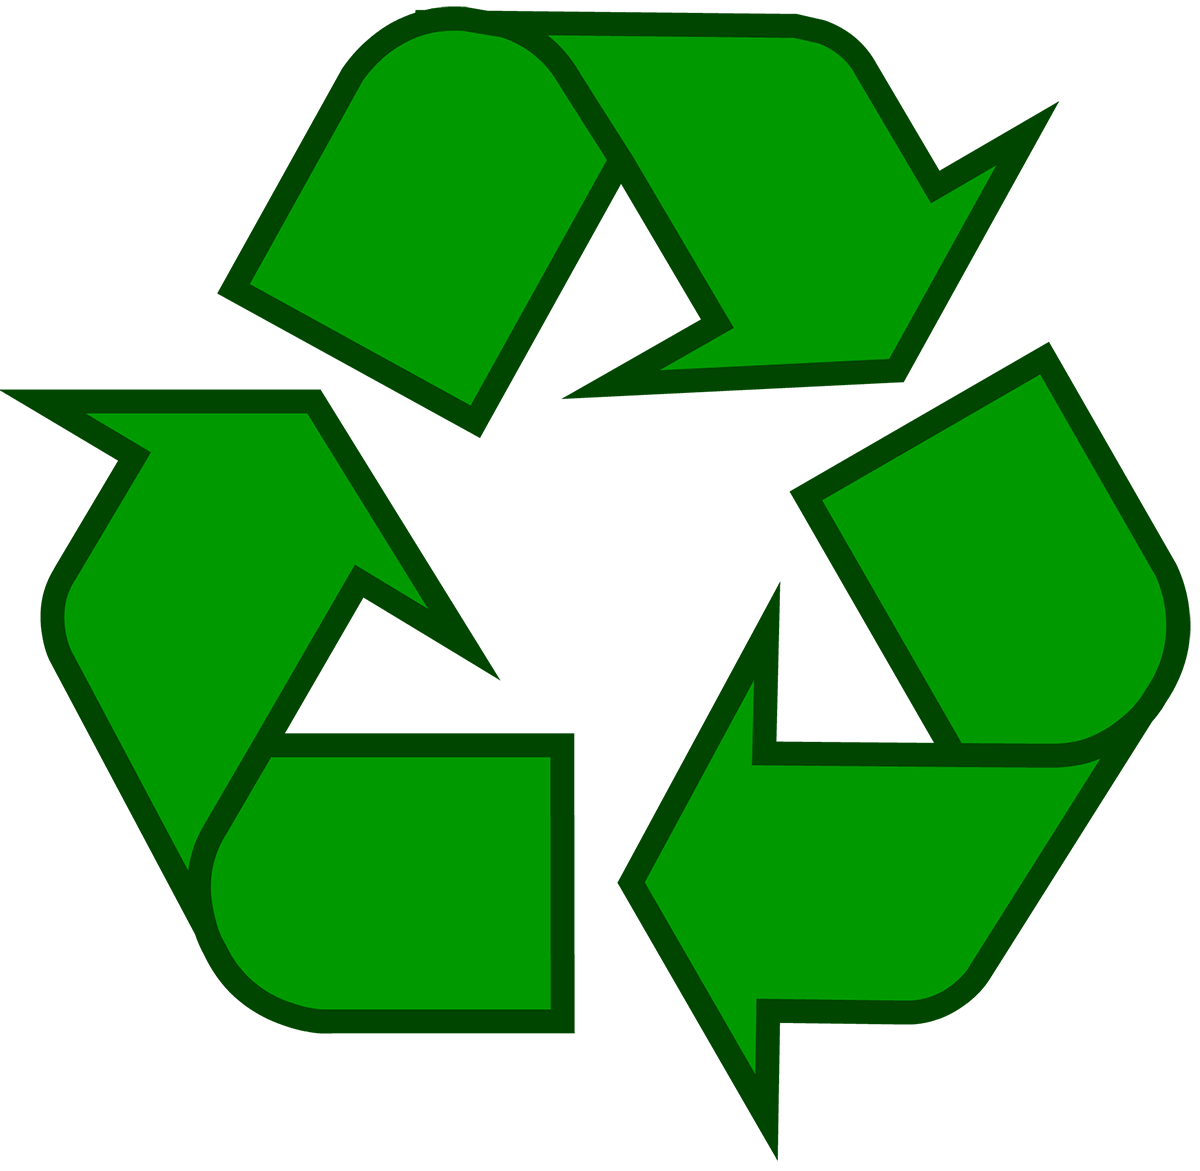 Download Recycling Symbol - The Original Recycle Logo | Recycle logo, Recycle  symbol, Recycle sign